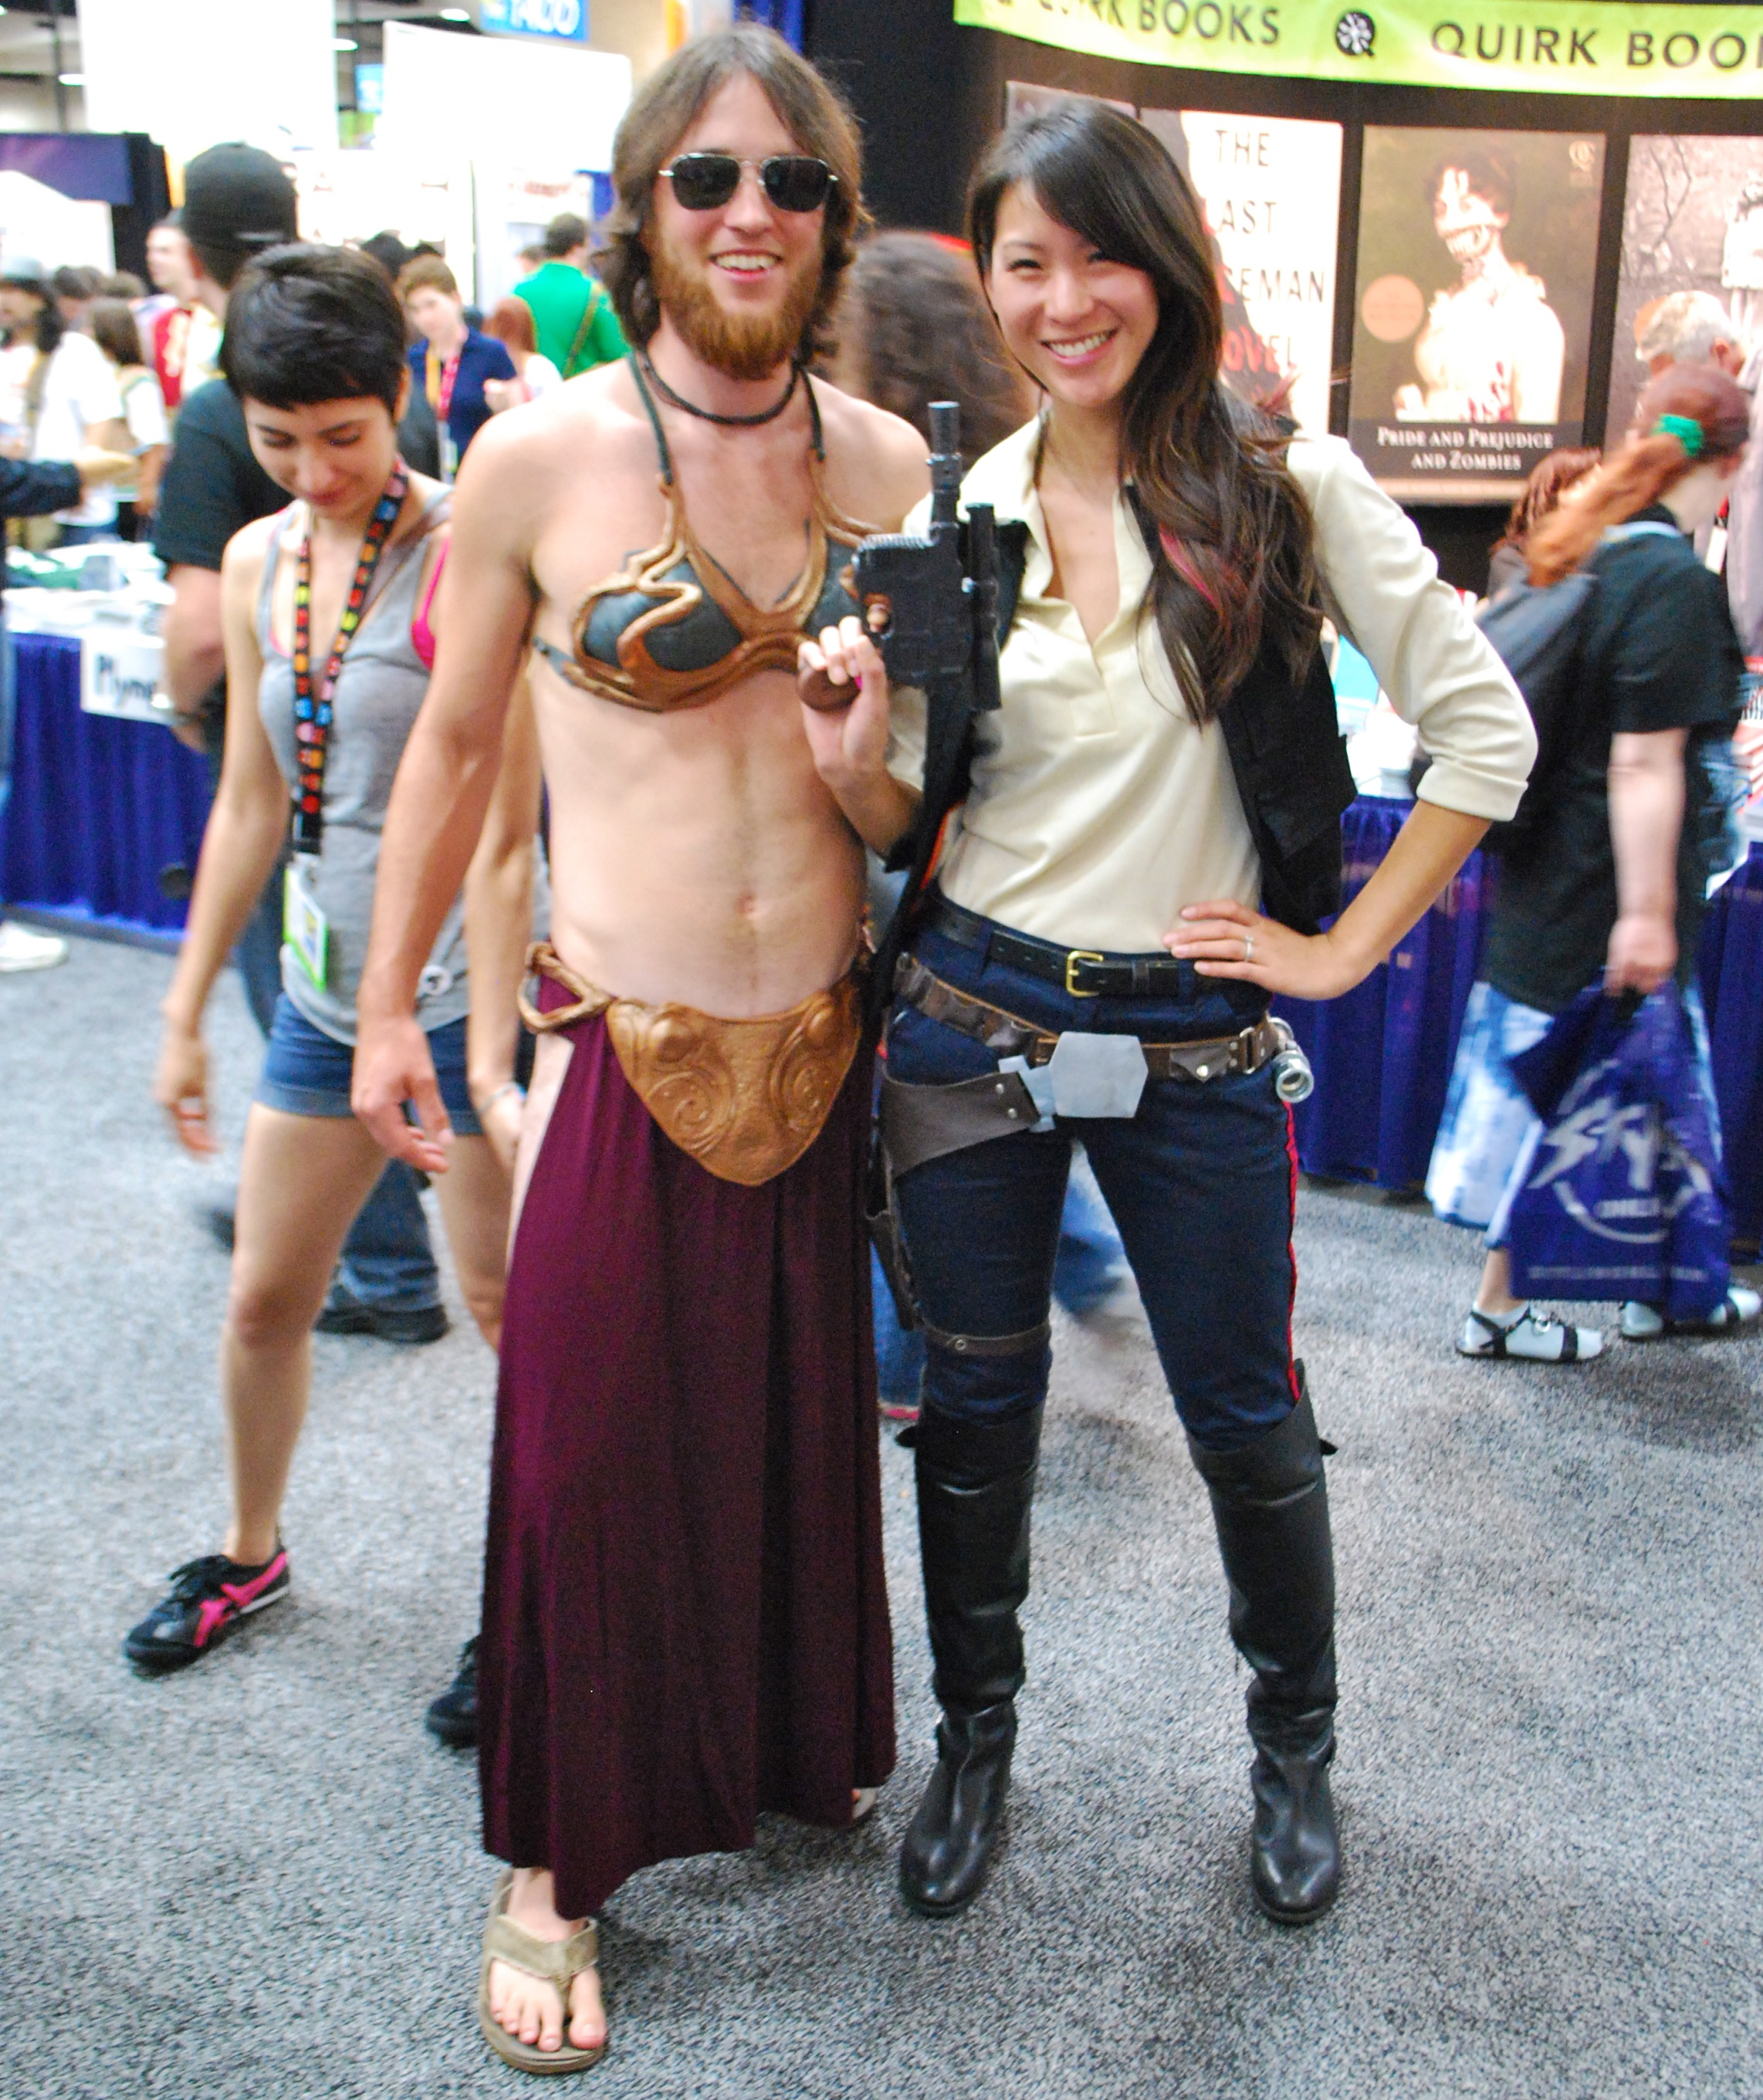 Female Han Solo and Male Leia Cross Dressers - San Diego Comic Con 2012